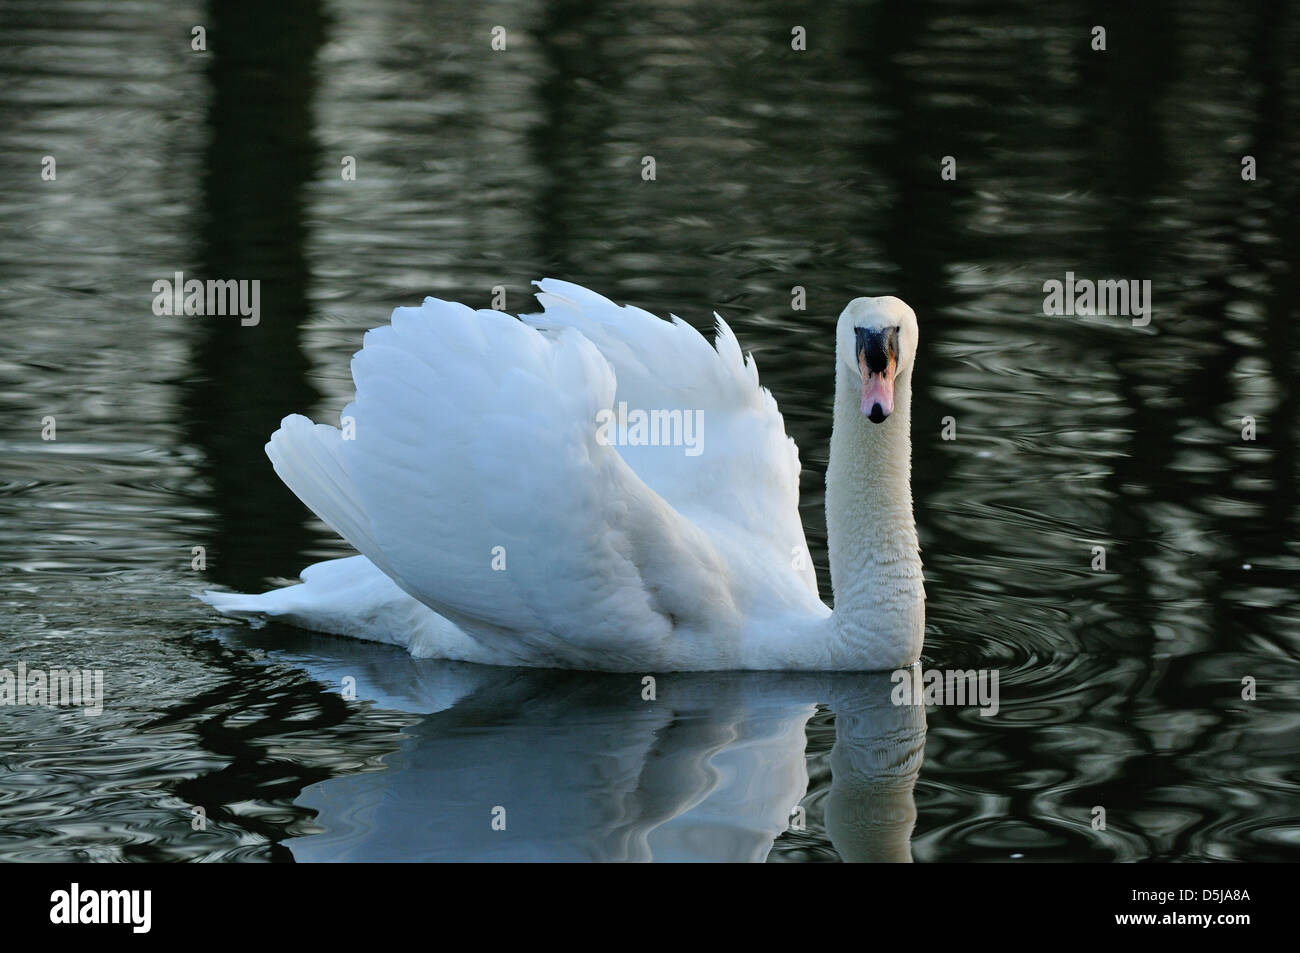 A male swan displays aggressively while protecting his patch of water - Stock Image